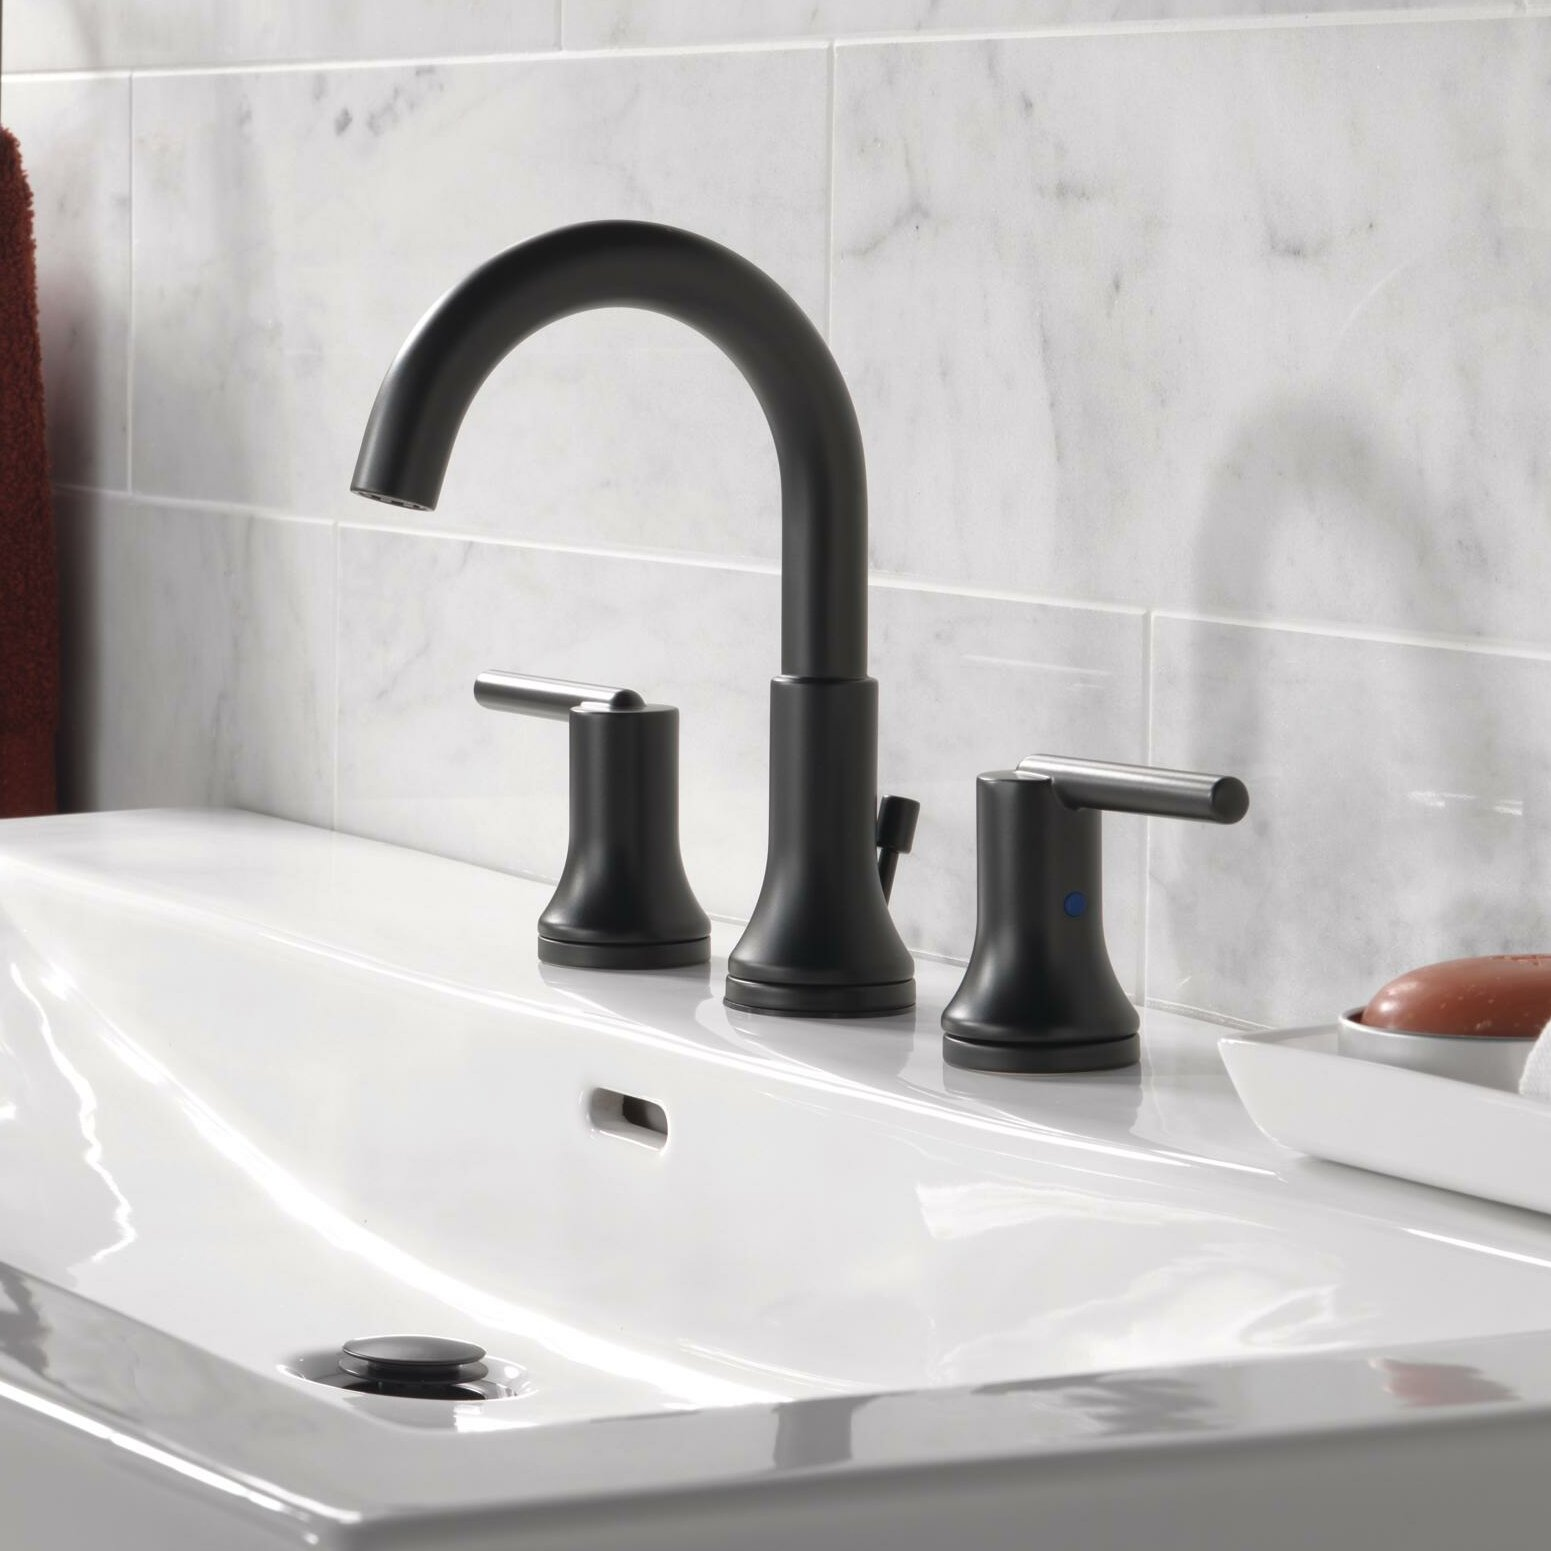 Delta Bathroom Faucets.Trinsic Widespread Bathroom Faucet With Drain Assembly And Diamond Seal Technology